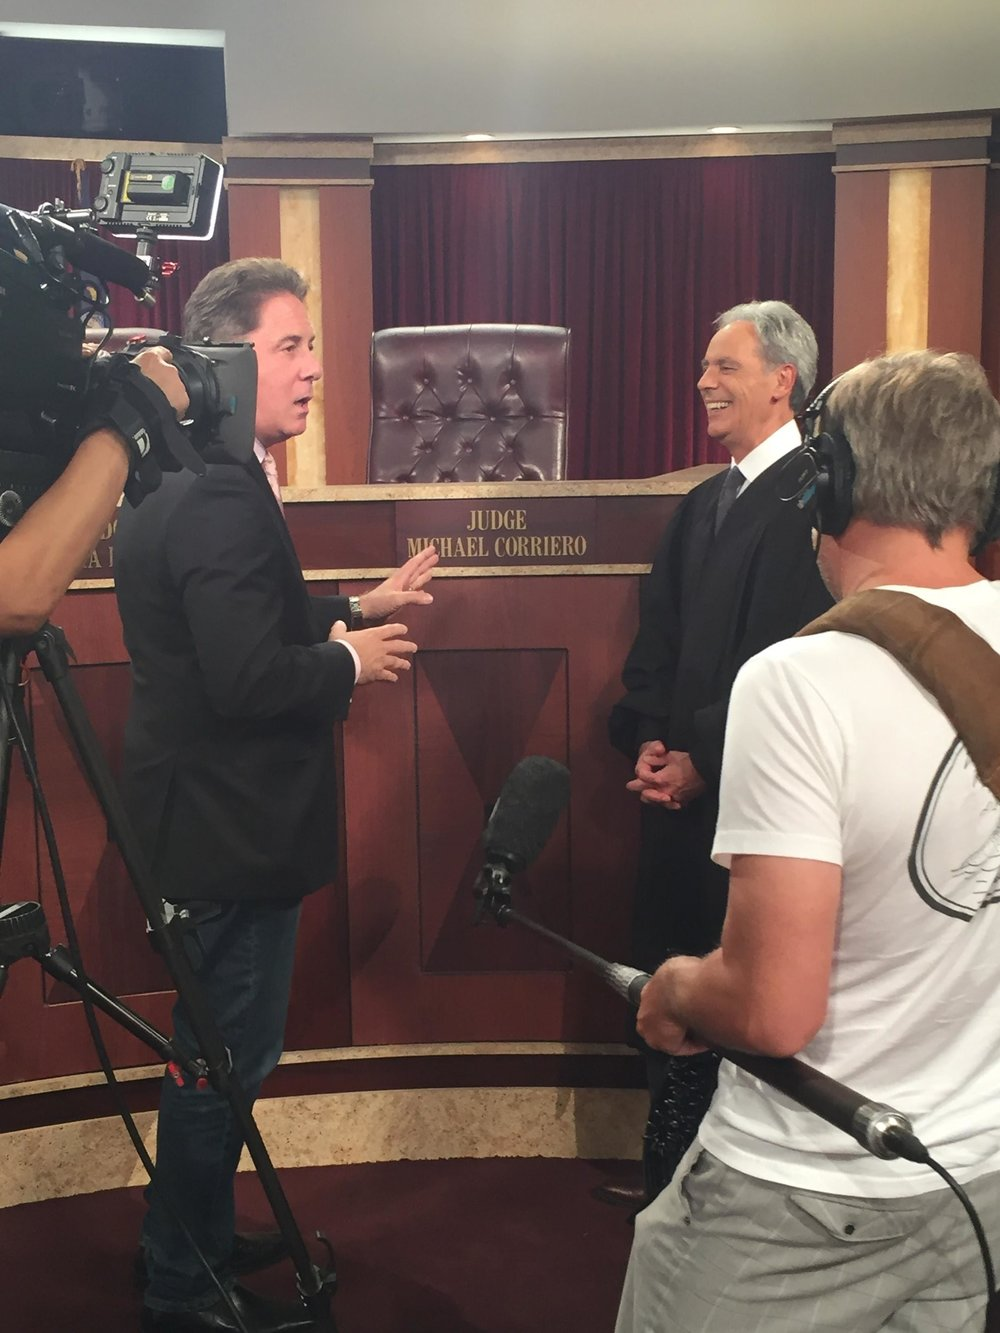 Behind The Scenes of Hot Bench with Inside Edition